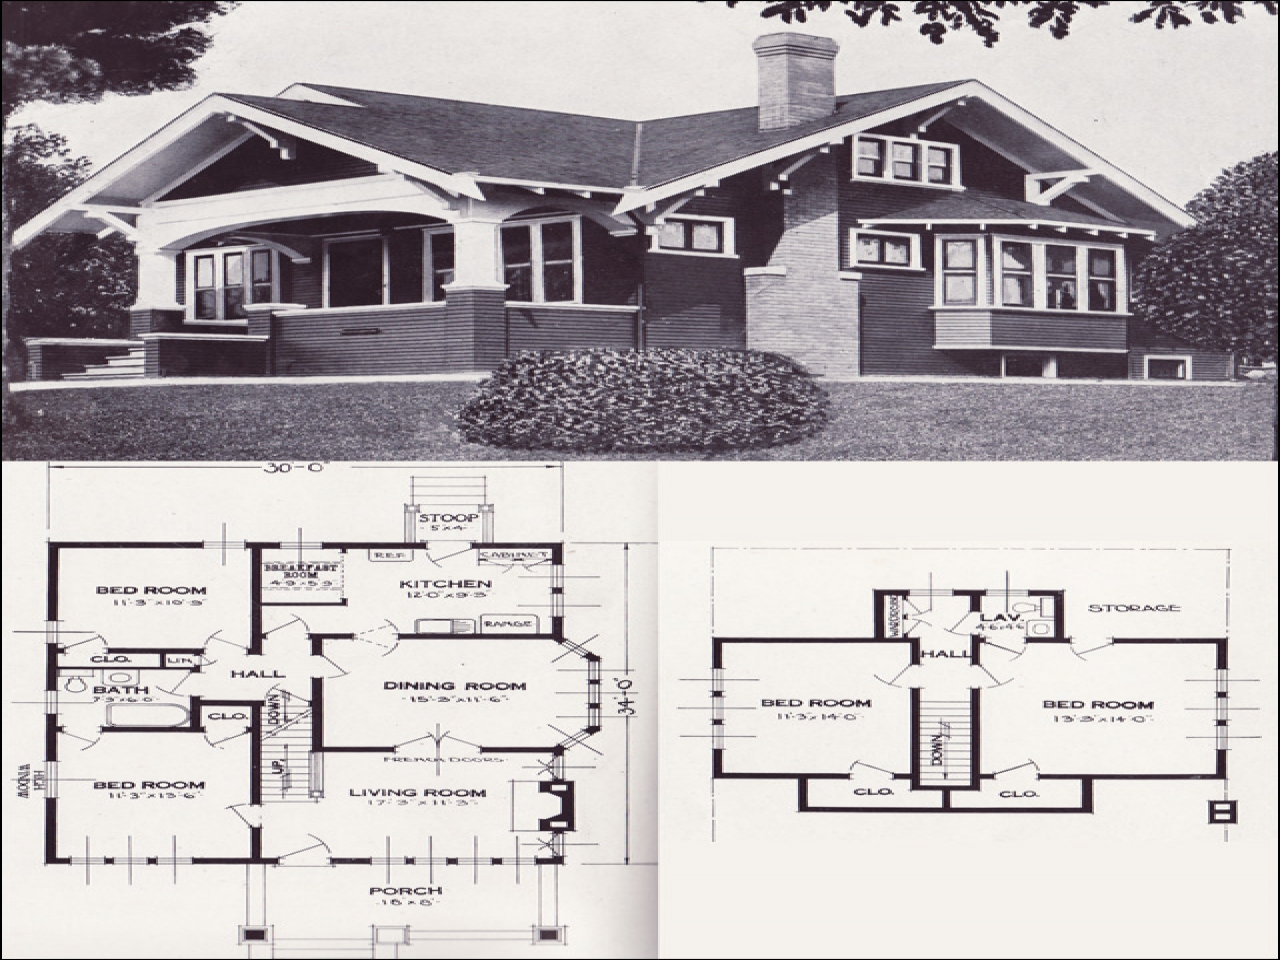 1920 craftsman bungalow interior 1920s craftsman bungalow for Craftsman house plans with interior photos